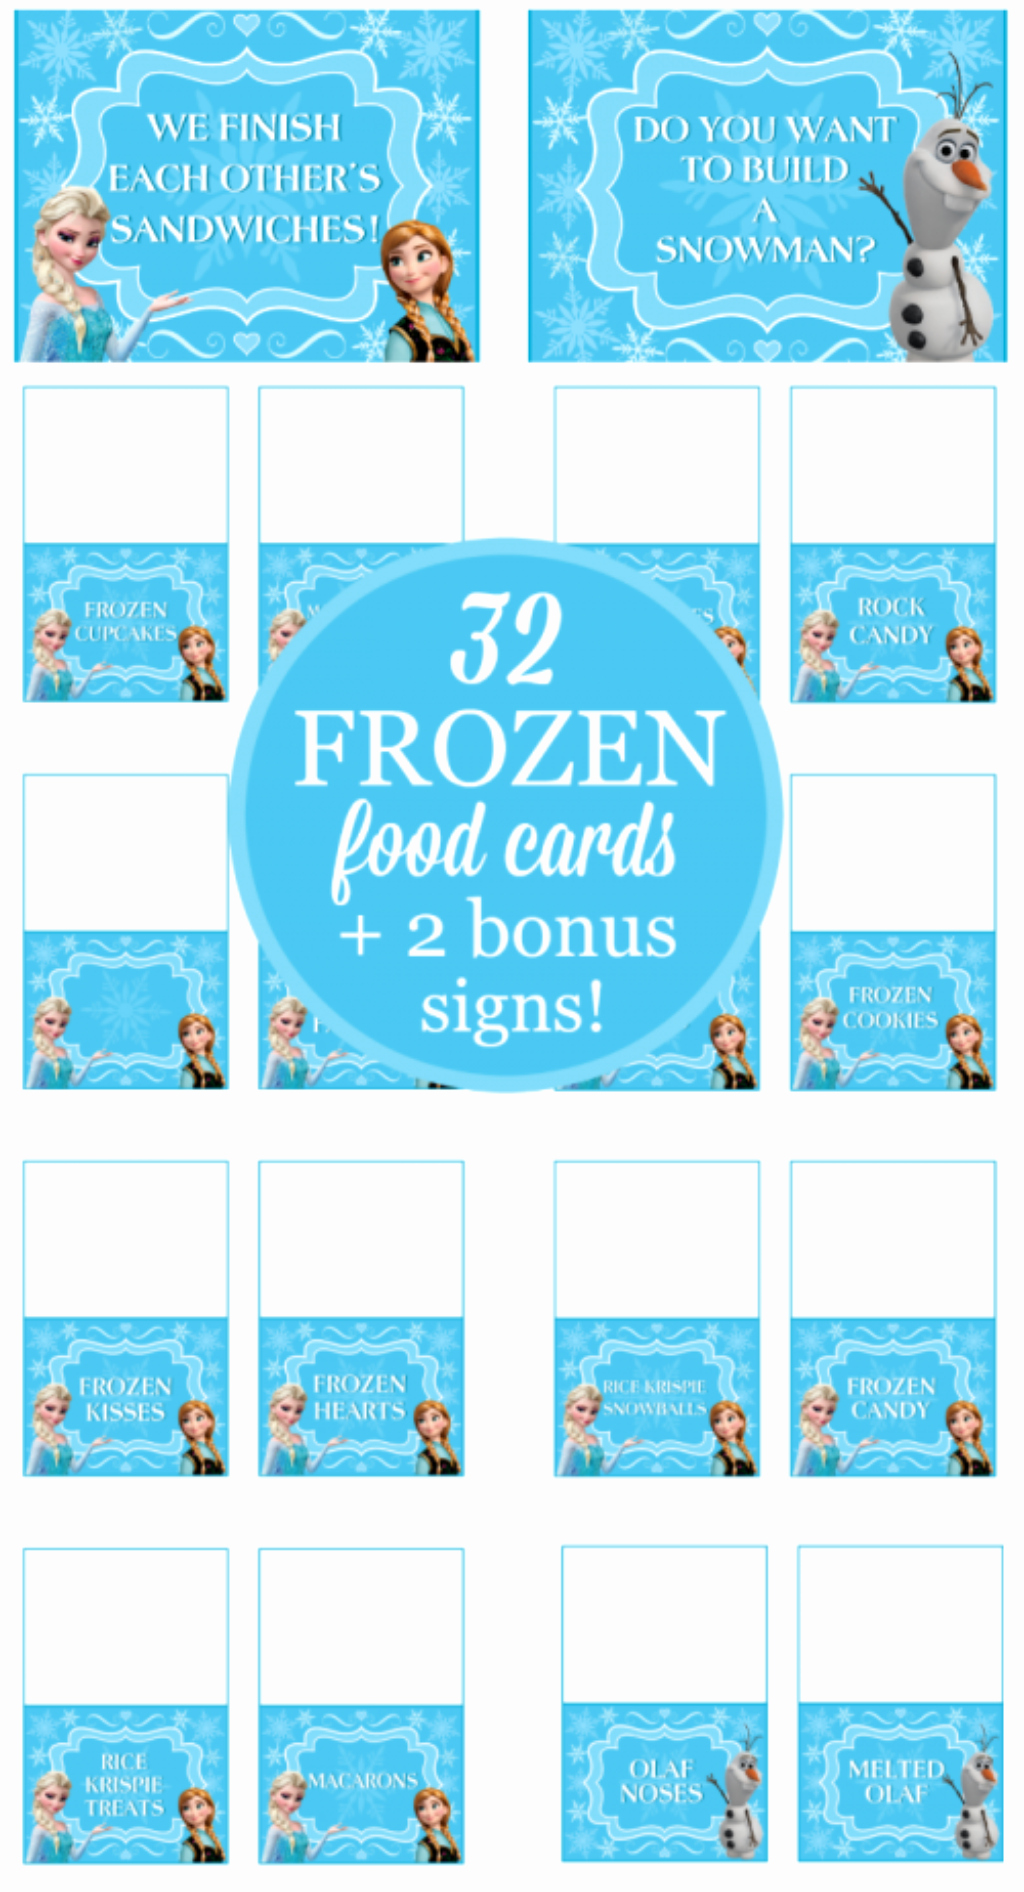 Frozen Birthday Card Printables Awesome 32 Frozen Party Food Card Printables Free Bonus Signs